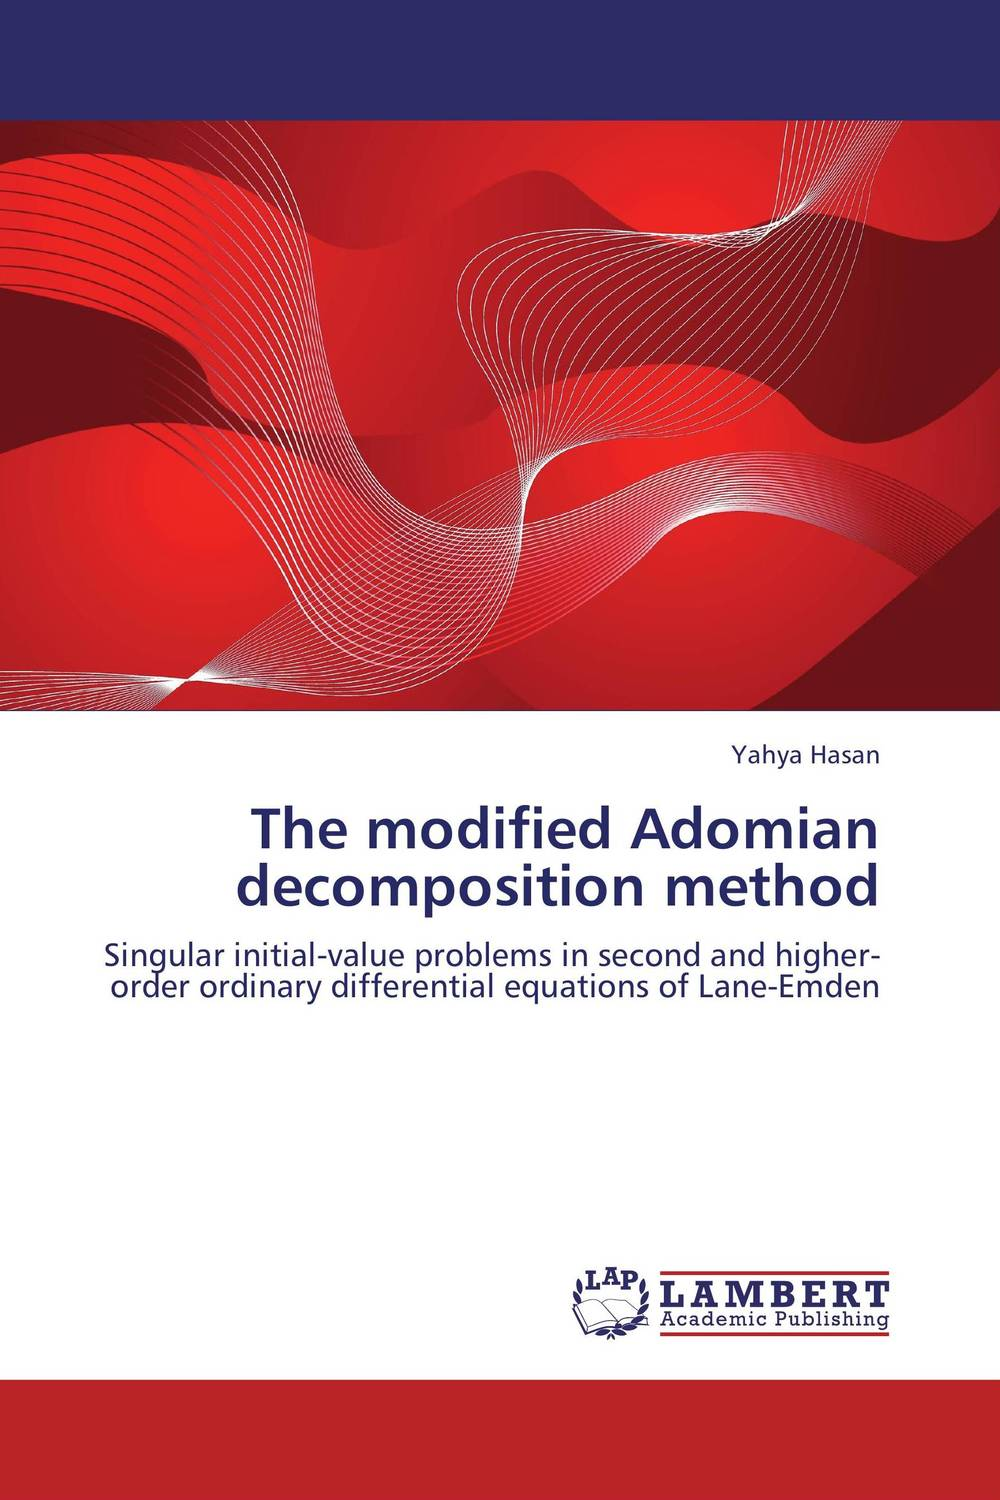 The modified Adomian decomposition method heba awad abd alrazak and luma naji mohammed tawfiq on initial value problems and its applications